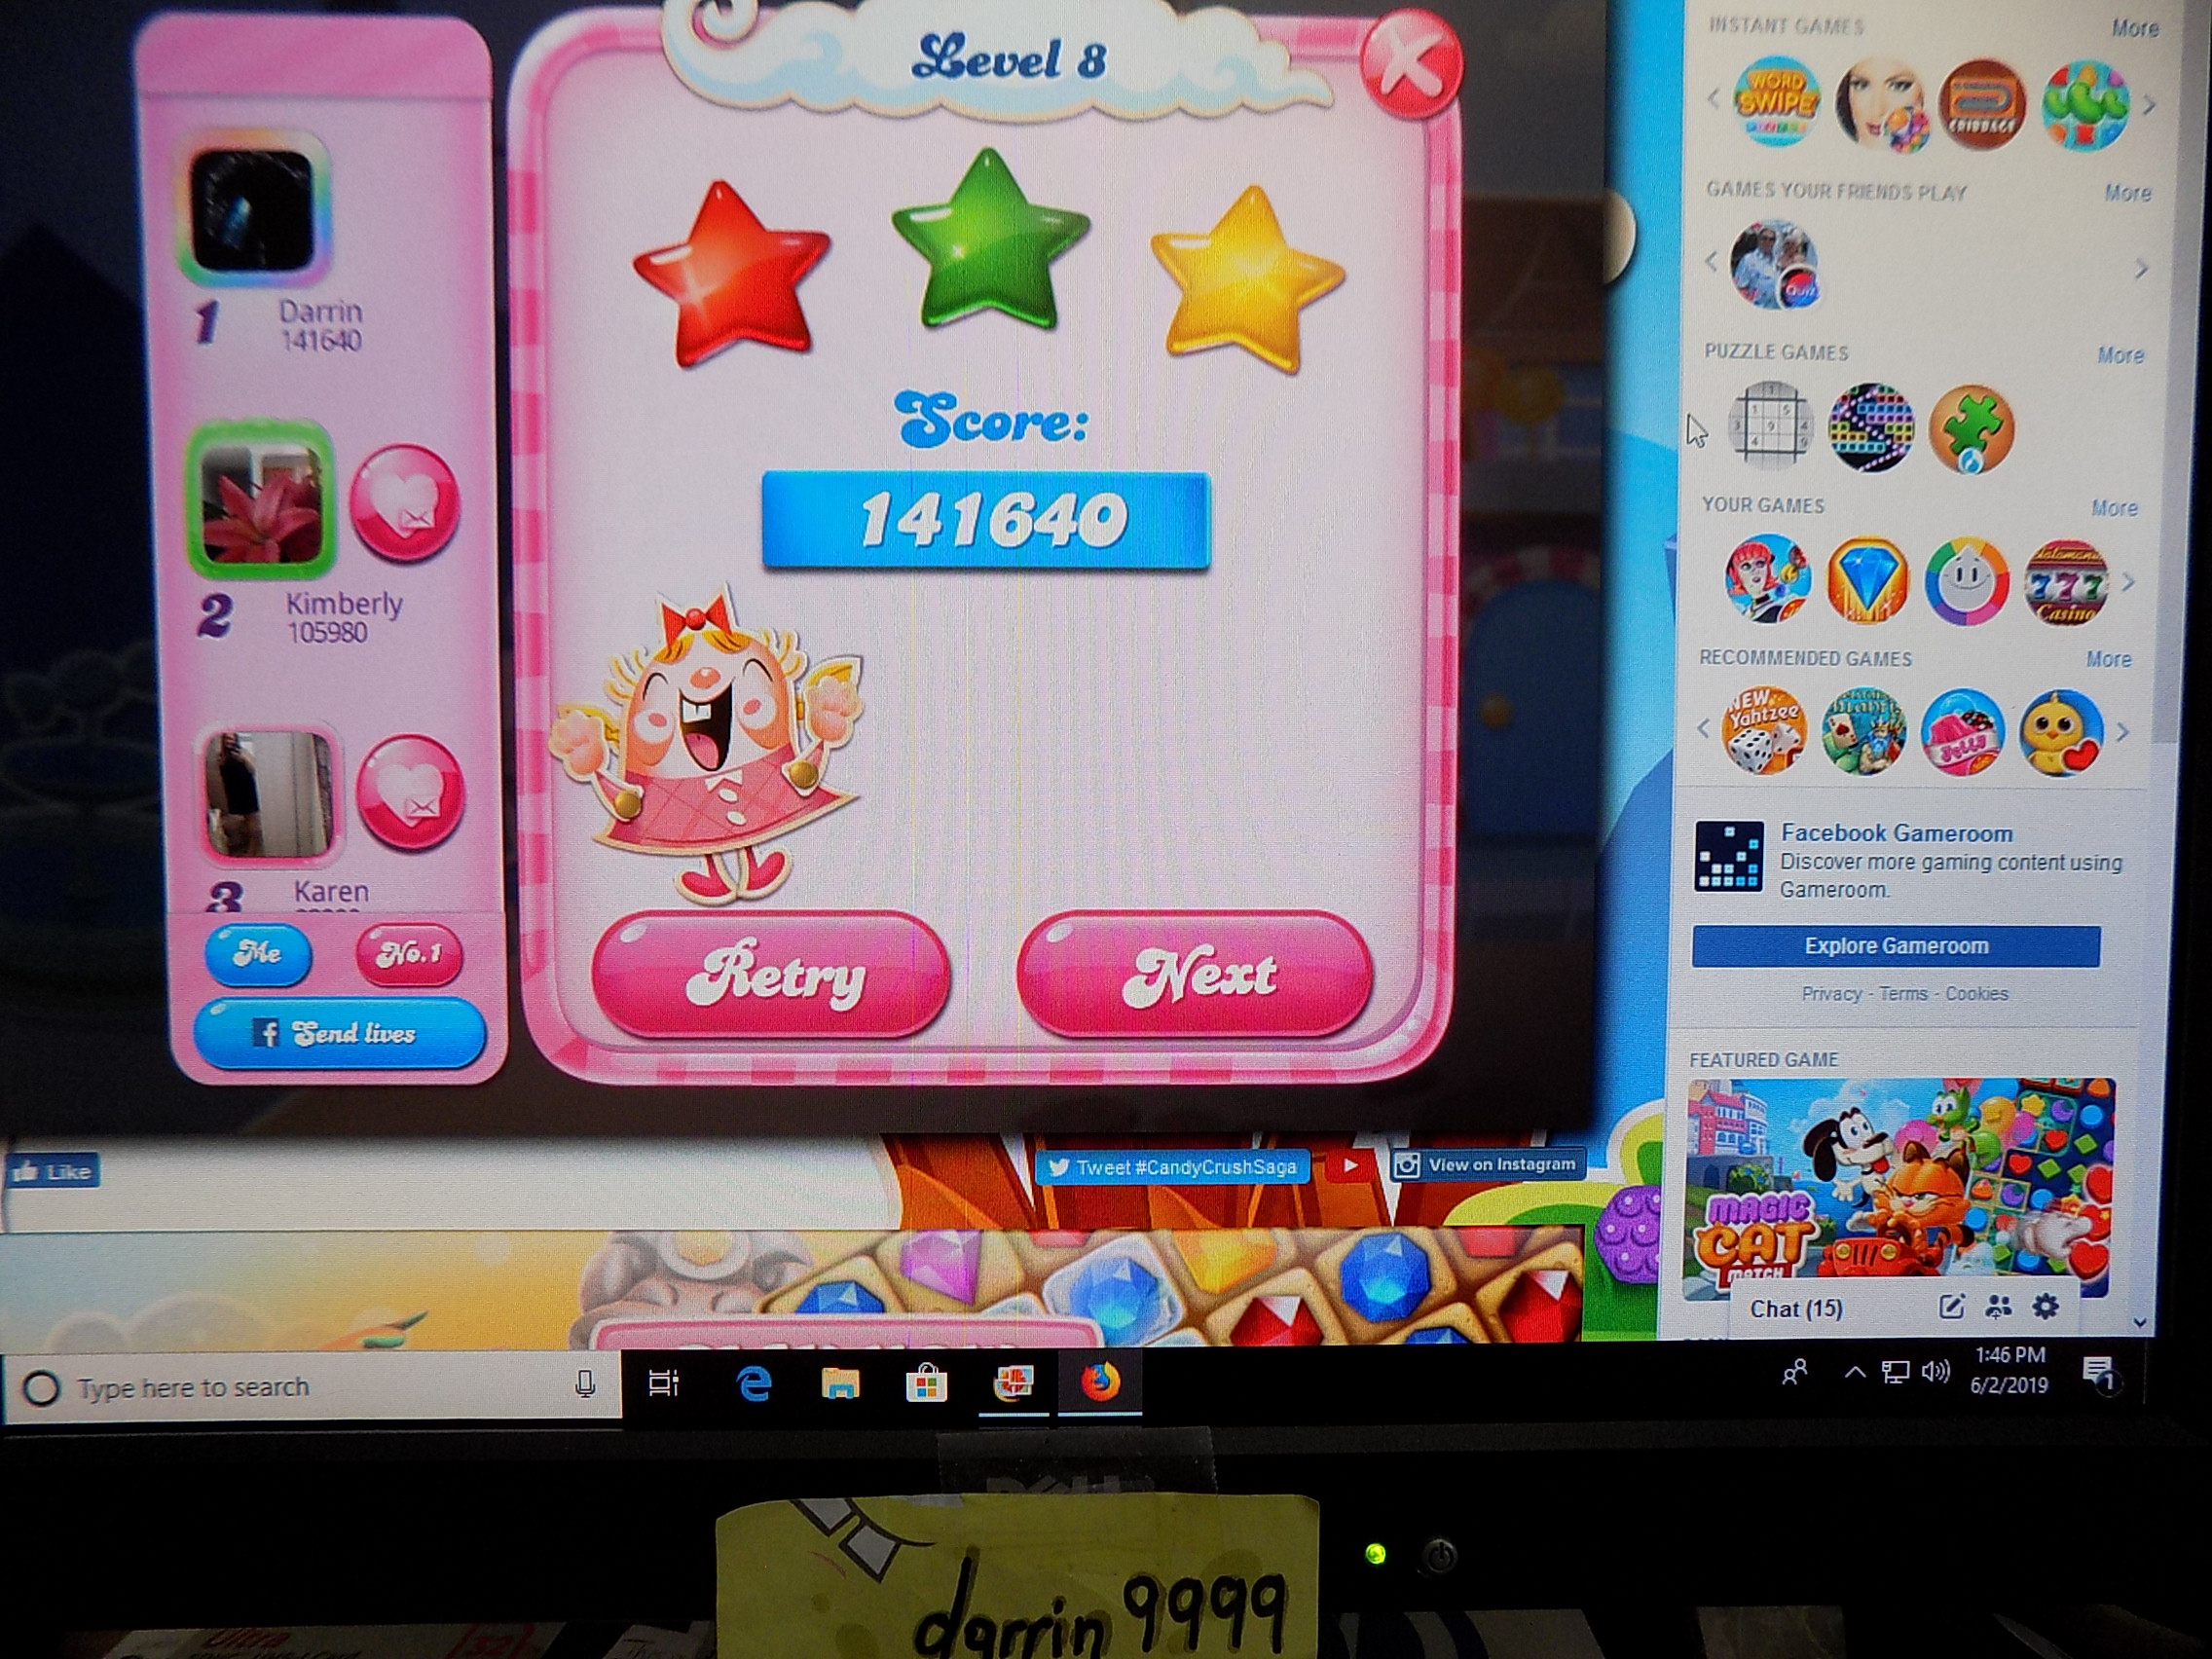 darrin9999: Candy Crush Saga: Level 008 (Web) 141,640 points on 2019-06-02 12:53:11